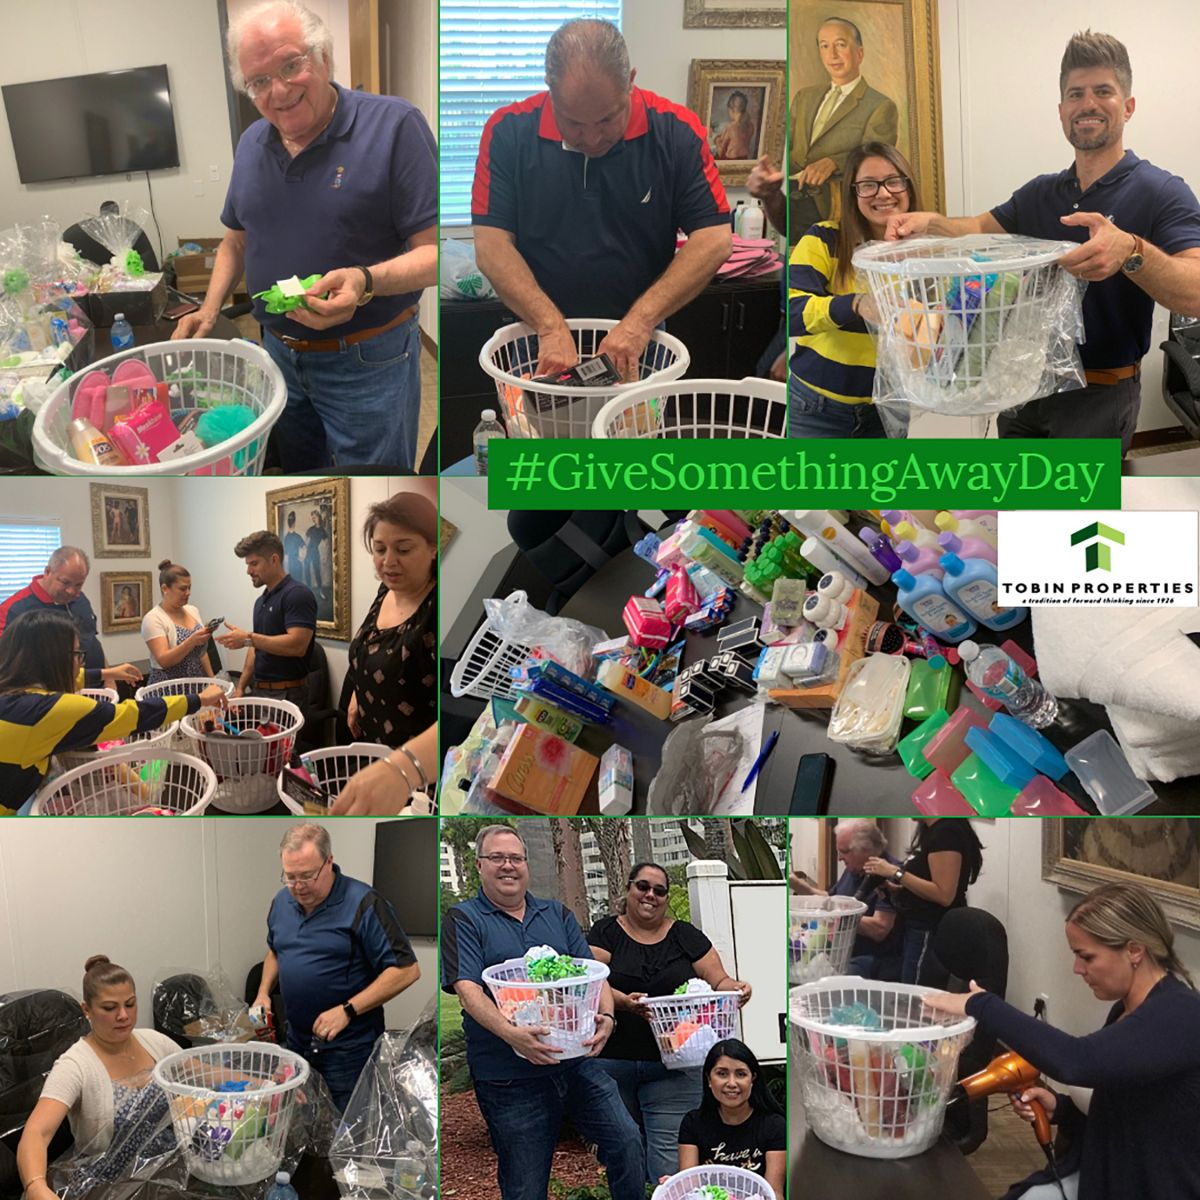 various images of Team Tobin sorting items and making baskets for community service.